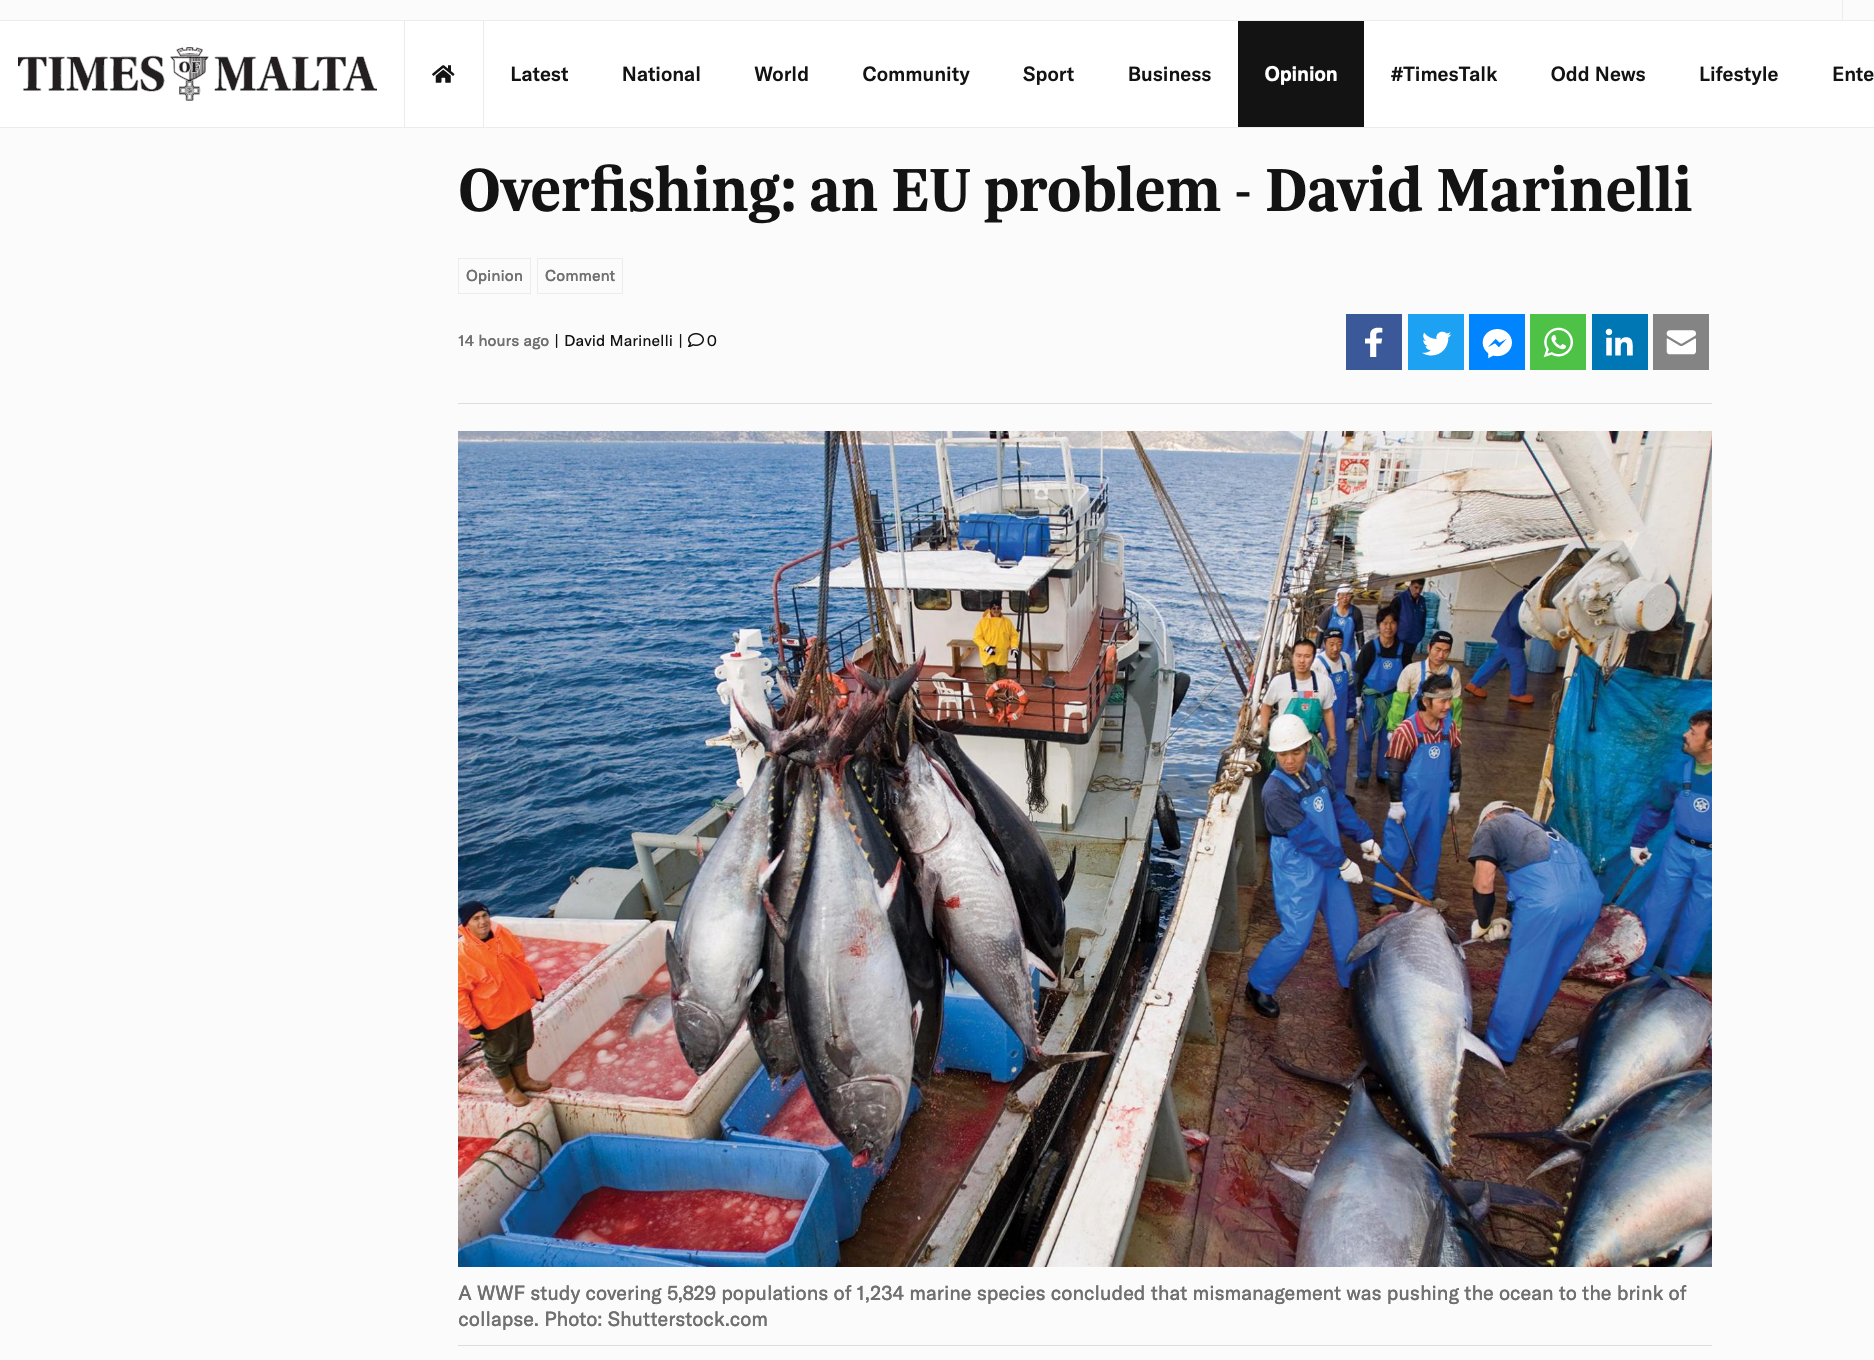 Times of Malta: Overfishing: an EU problem - David Marinelli